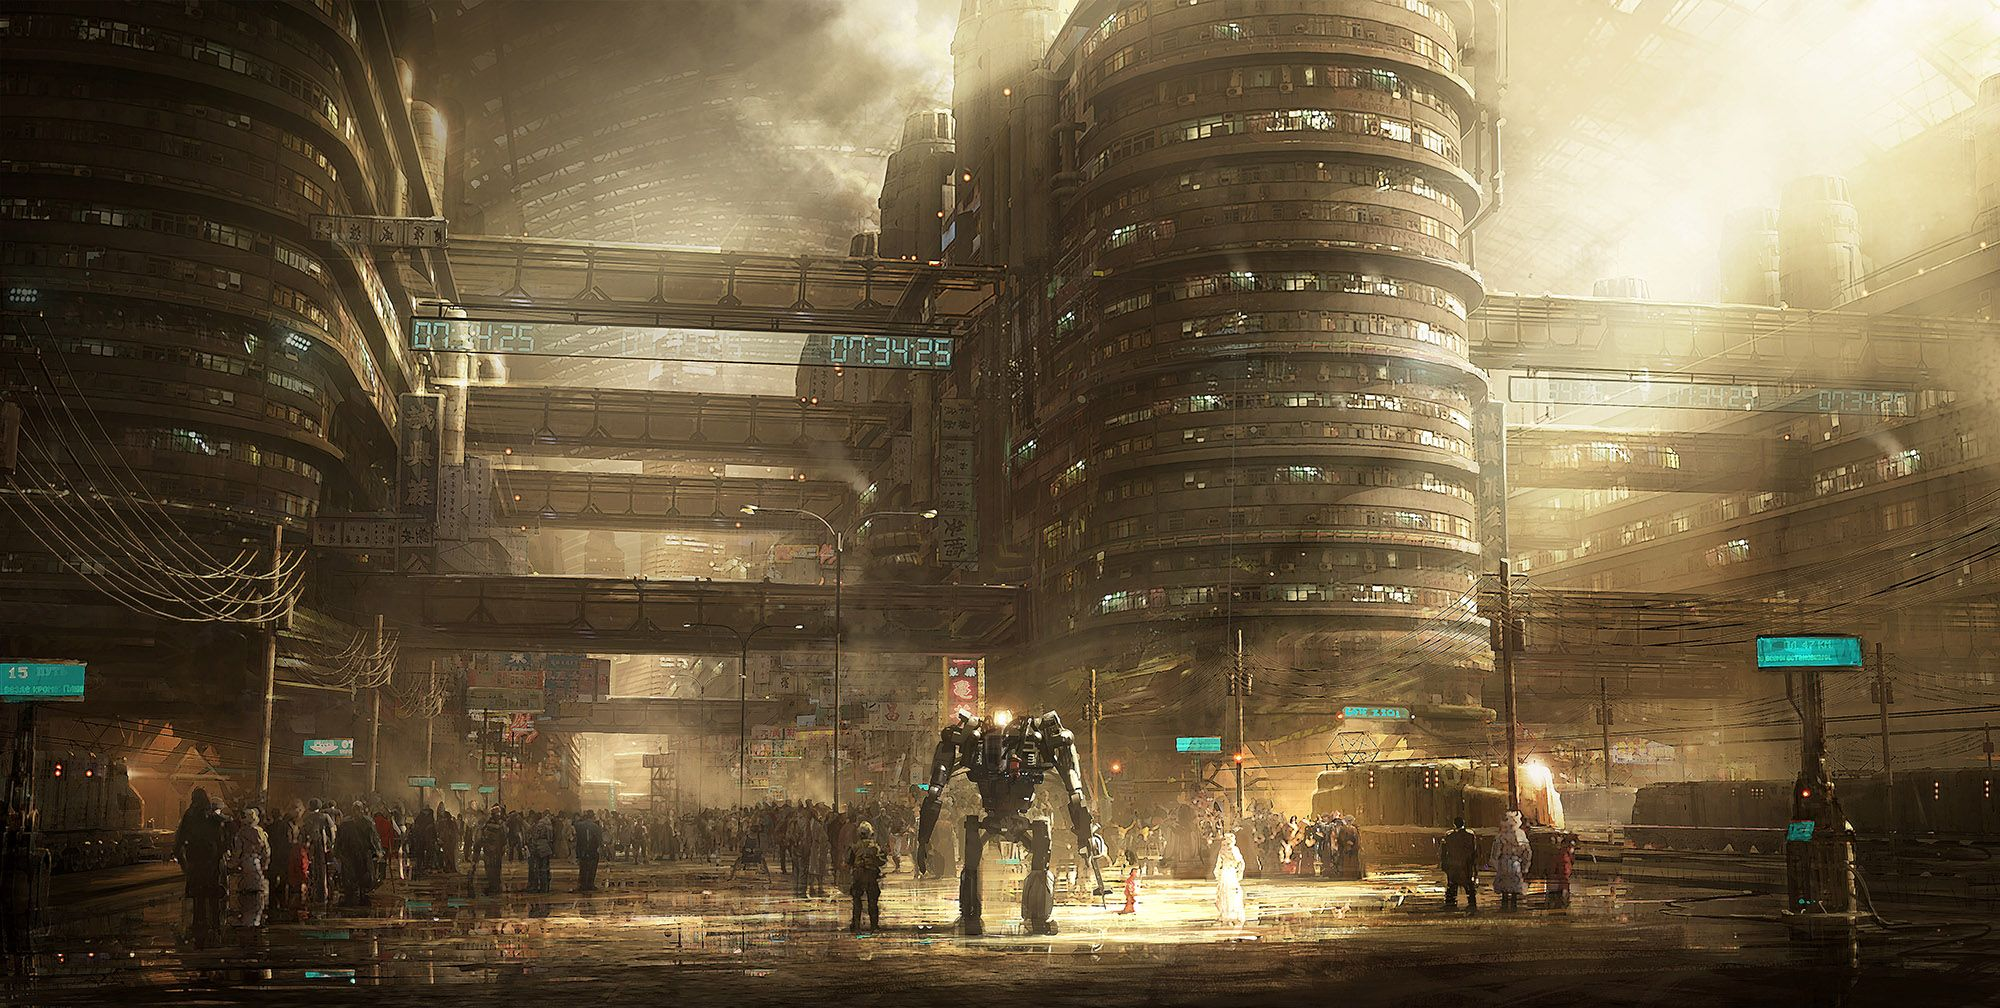 Emmanuel Shiu is a concept artist who's work spans several movies and videogames.